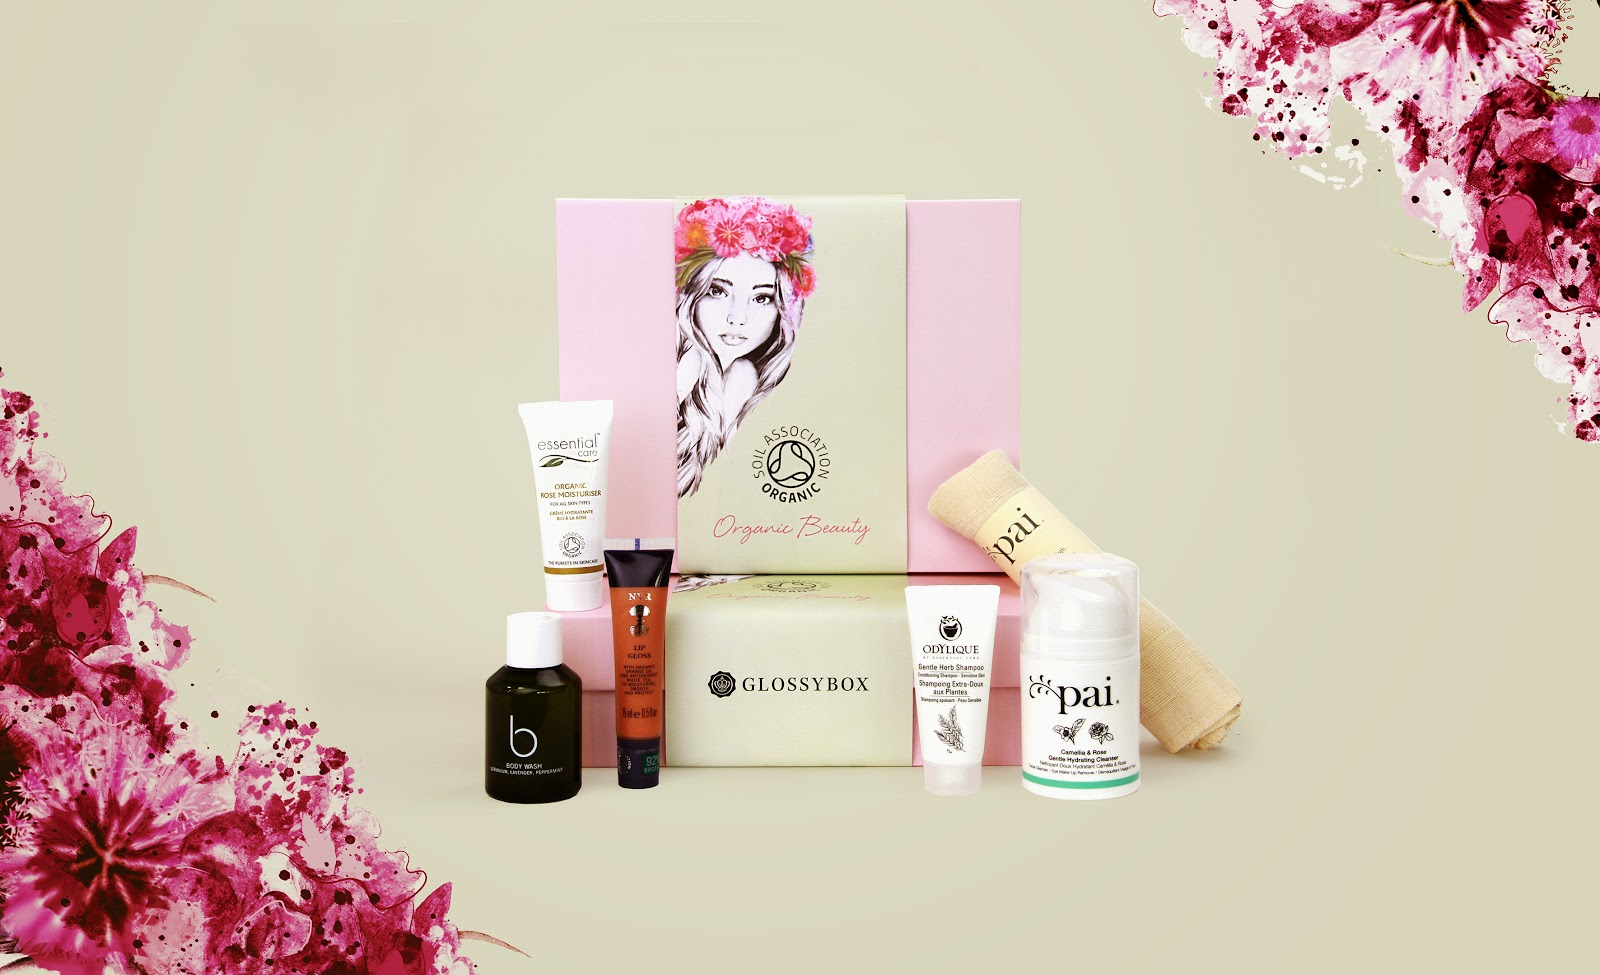 Glossy Box Organic Beauty Box